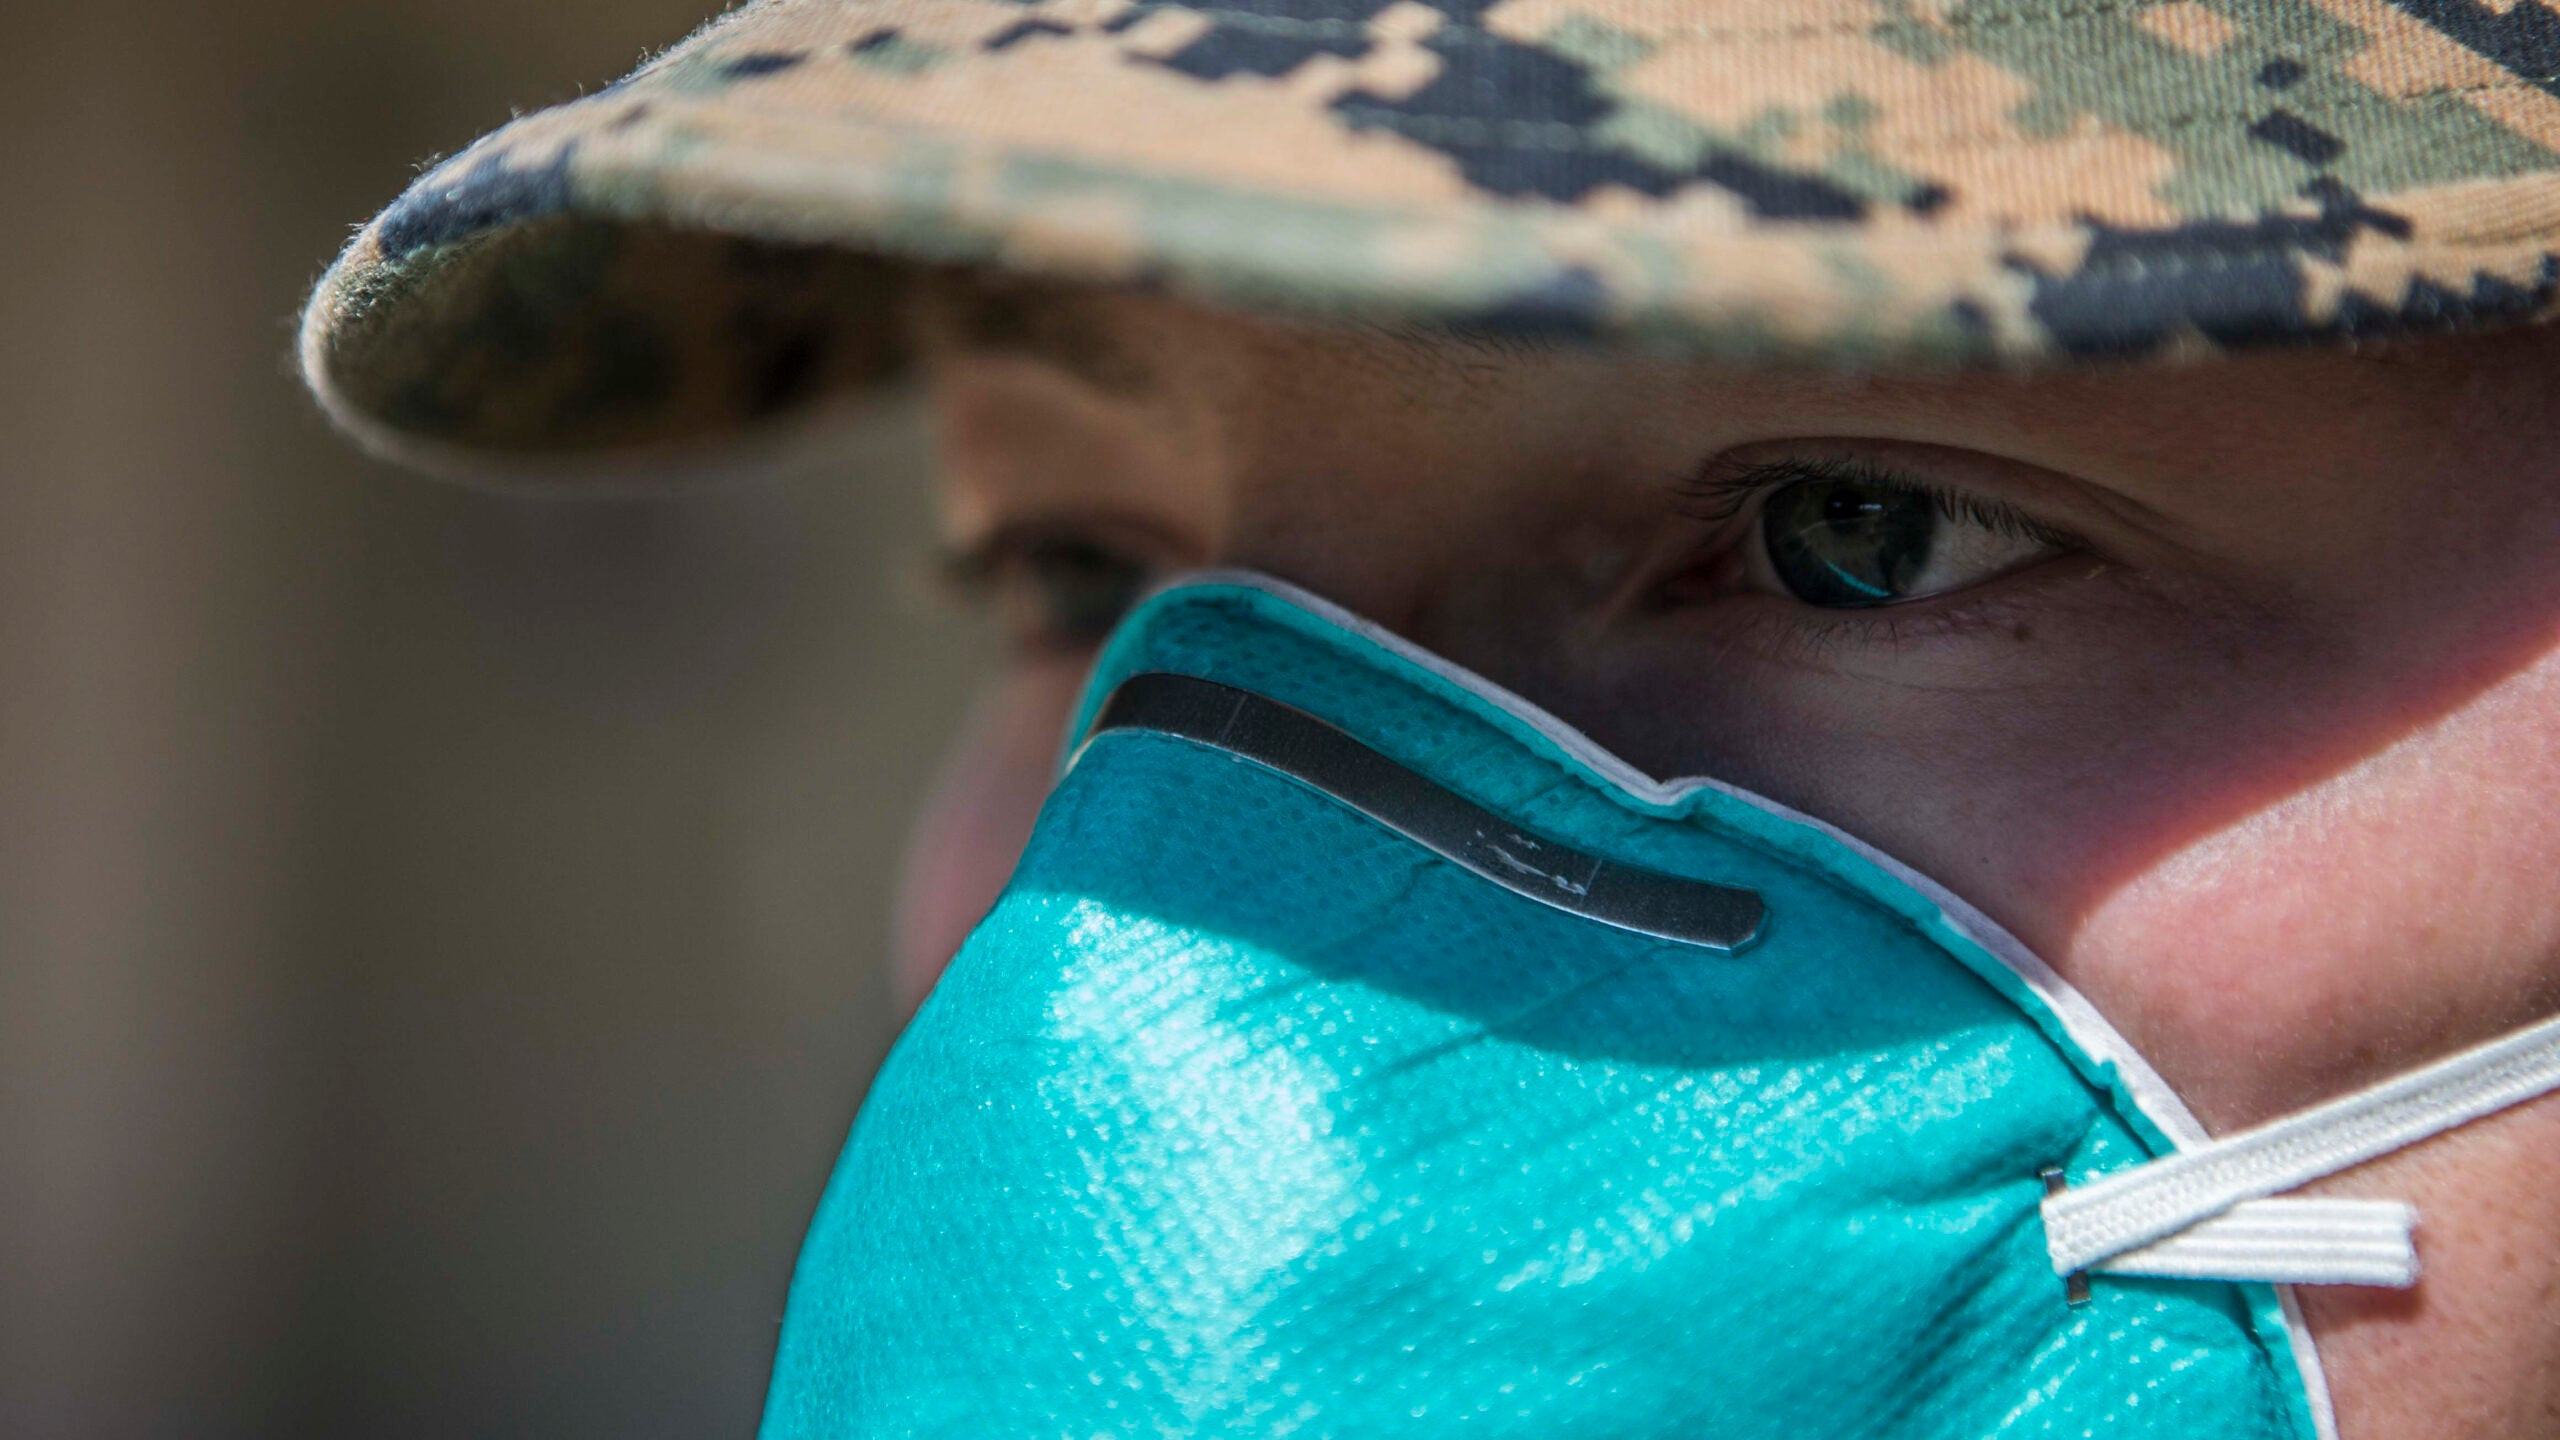 Defense Secretary directs troops to wear face coverings when social distancing isn't possible